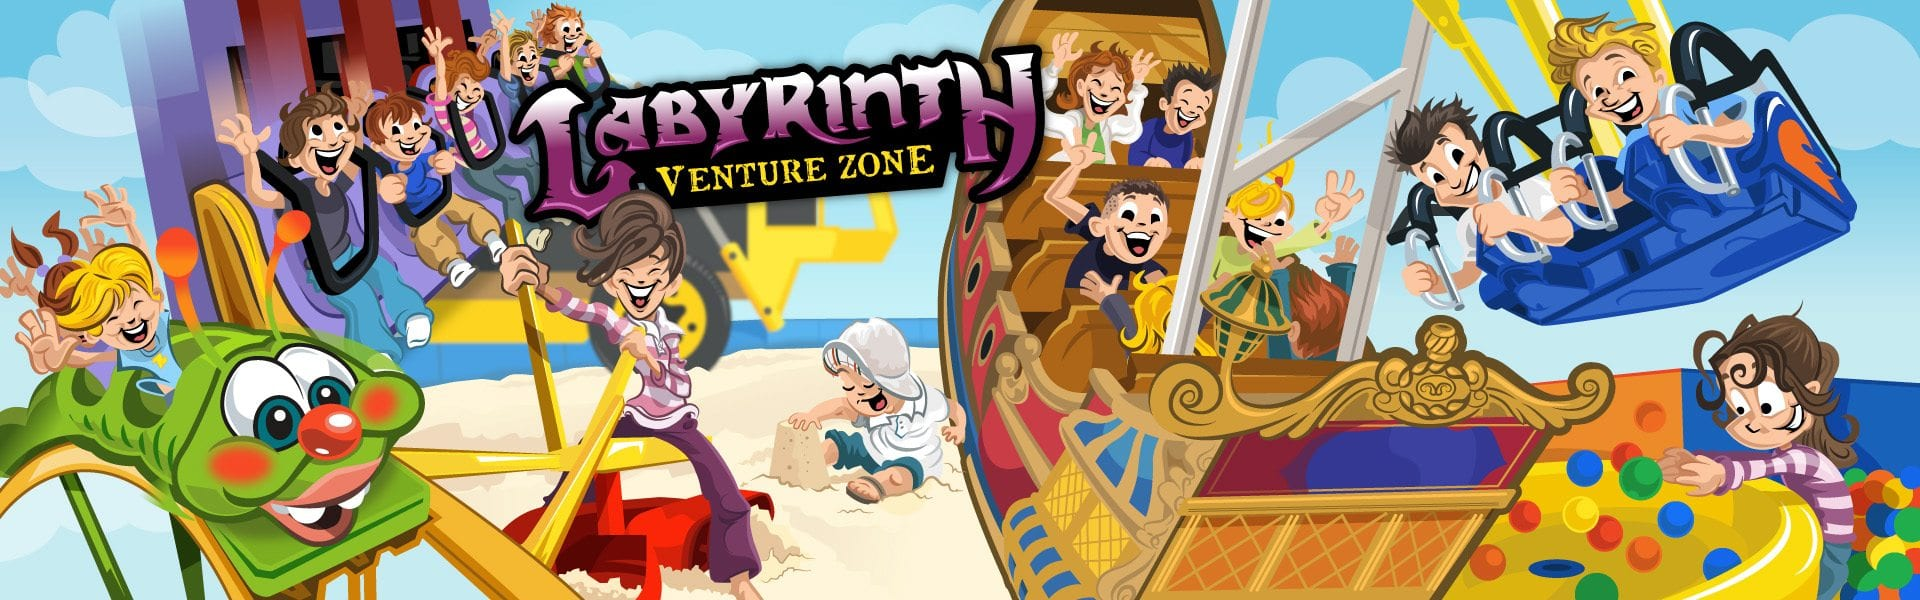 Labyrinth Venture Zone